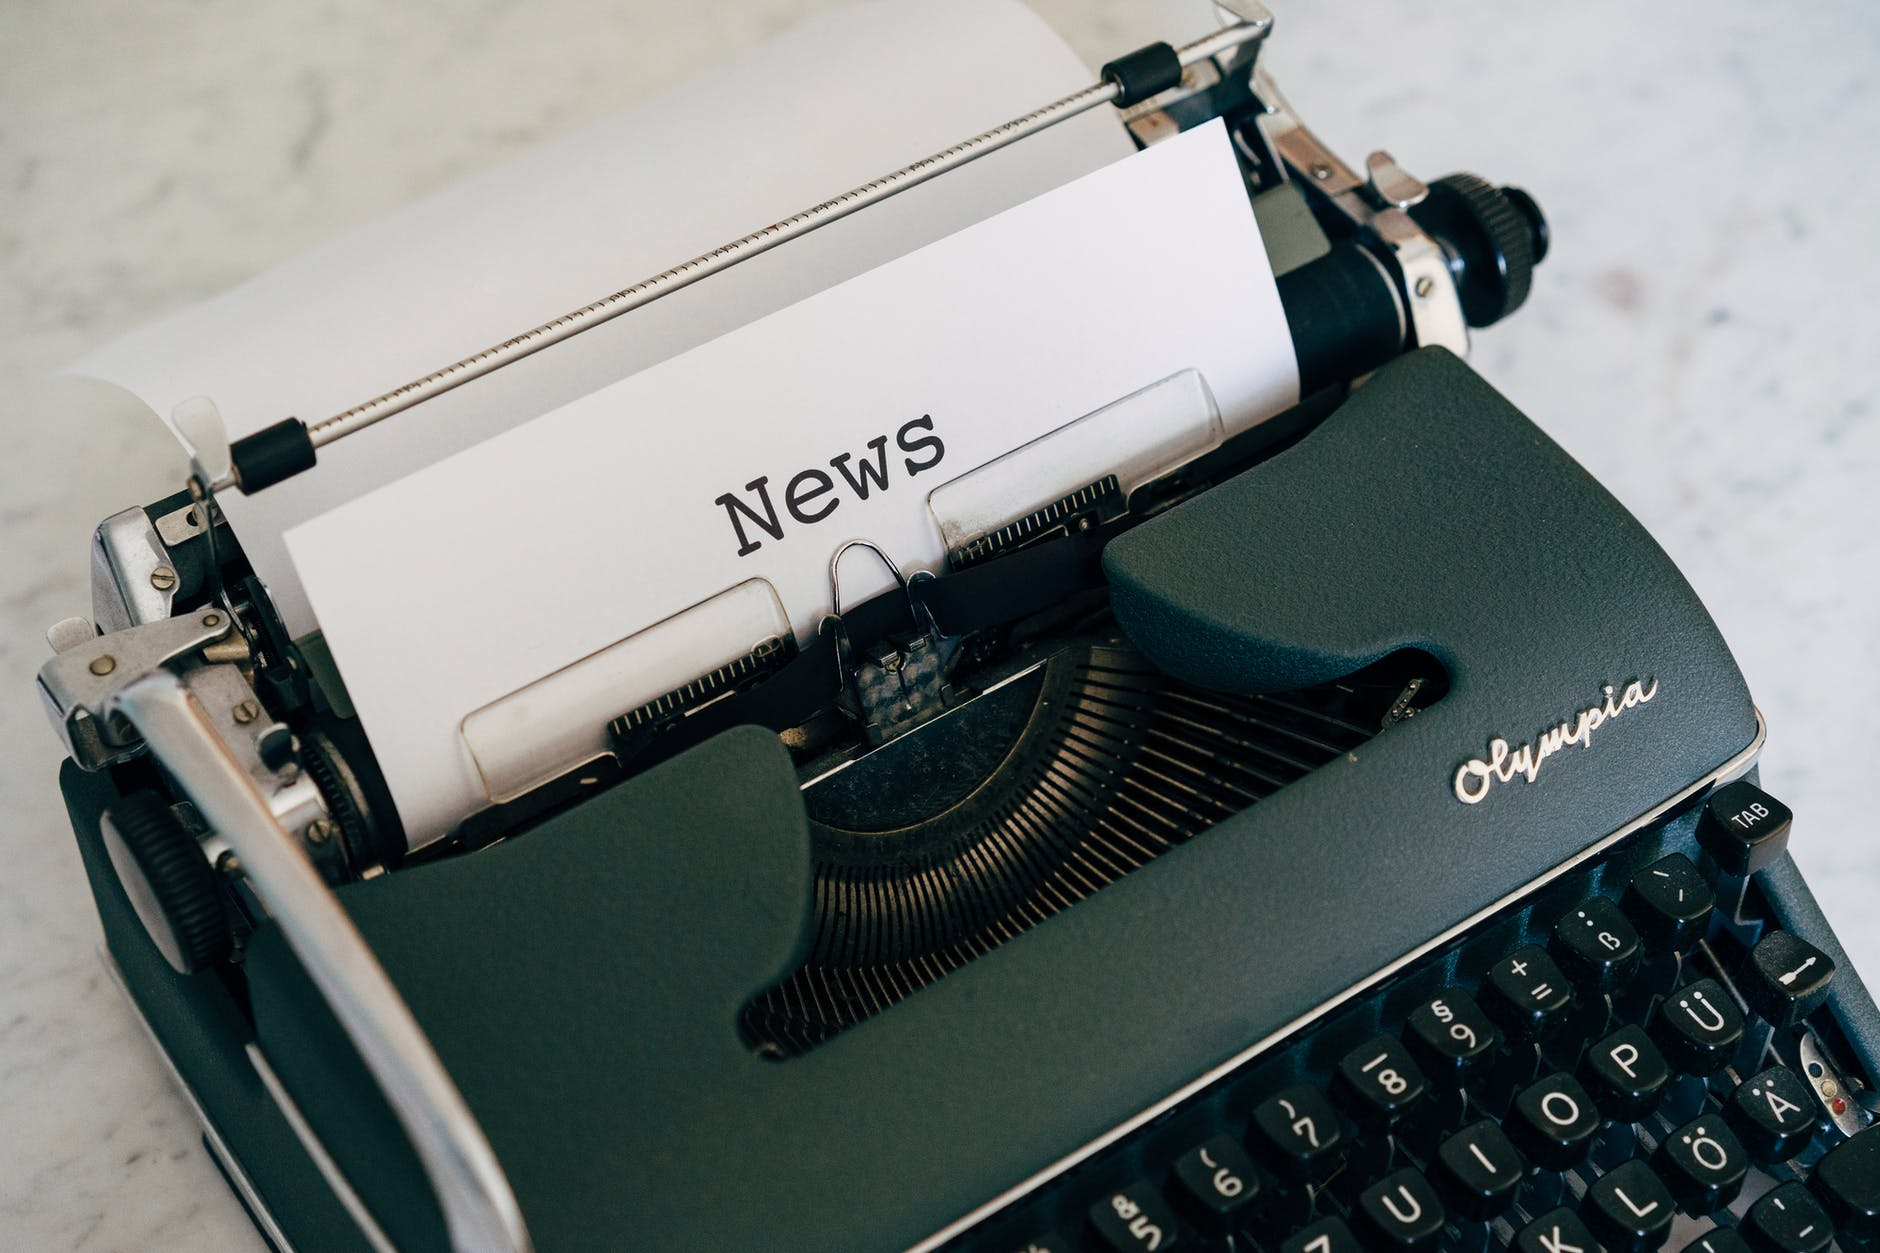 news typewritten on white paper